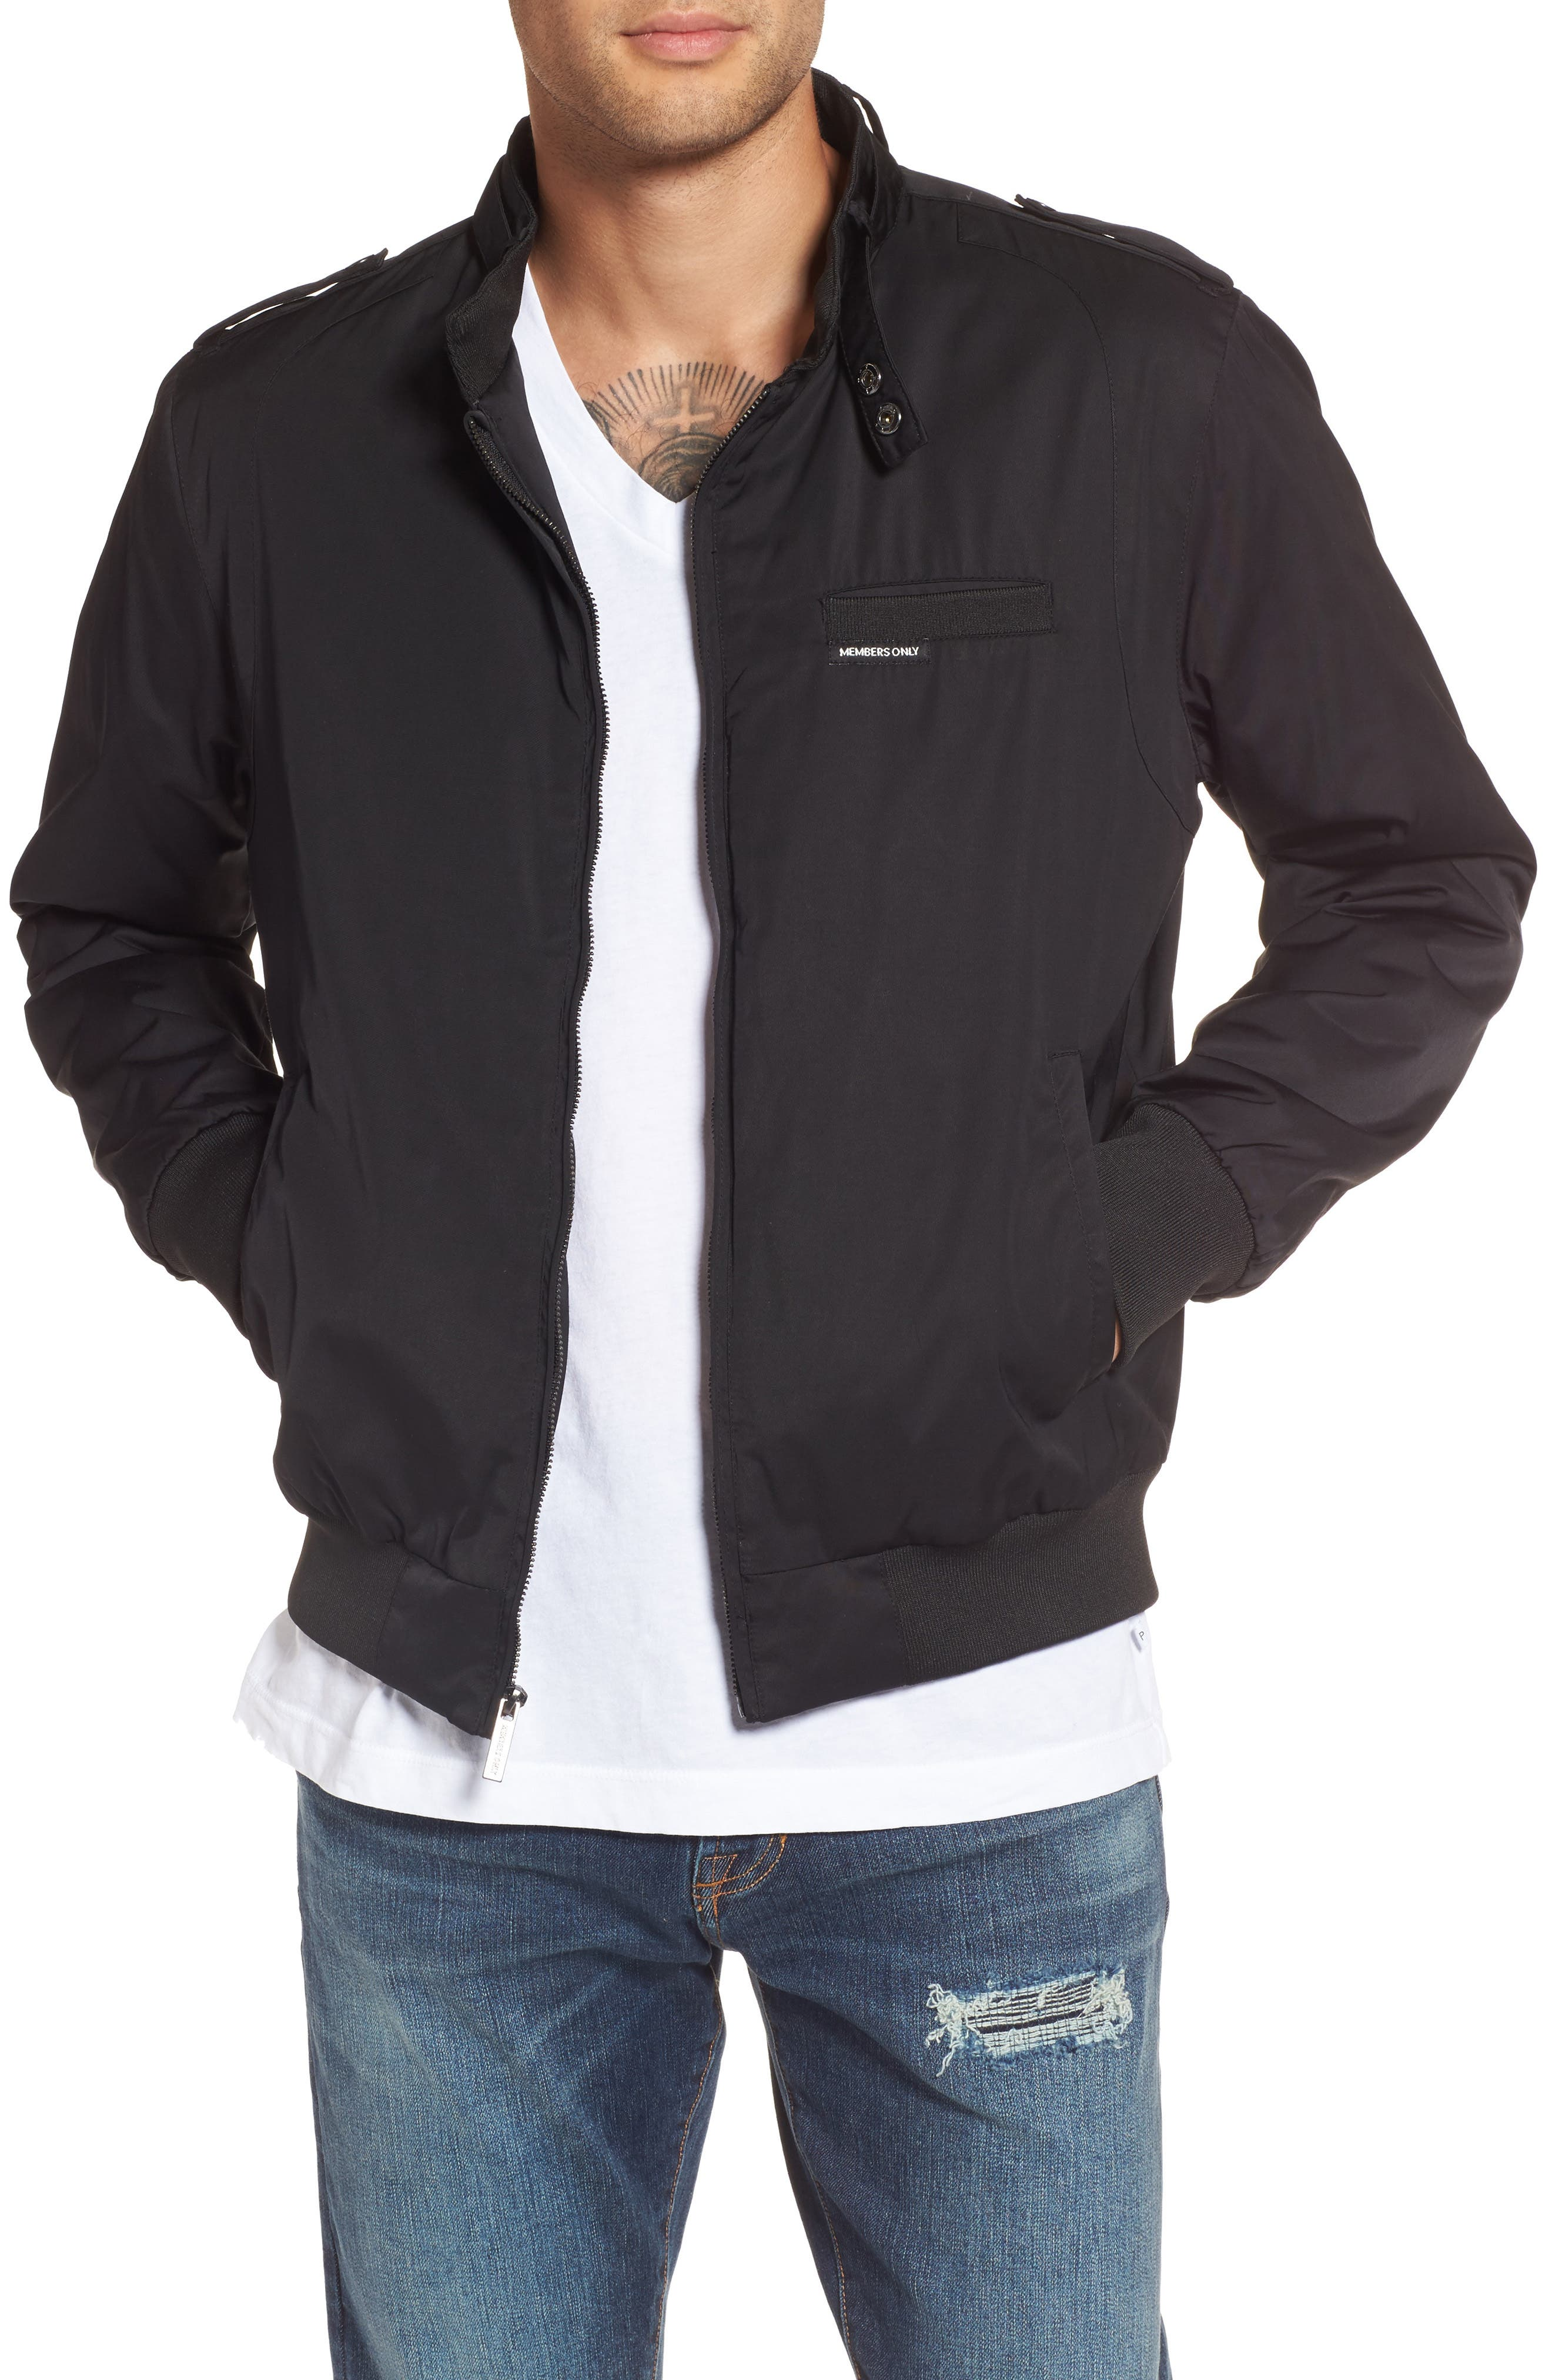 Twill Iconic Jacket,                             Main thumbnail 1, color,                             Black